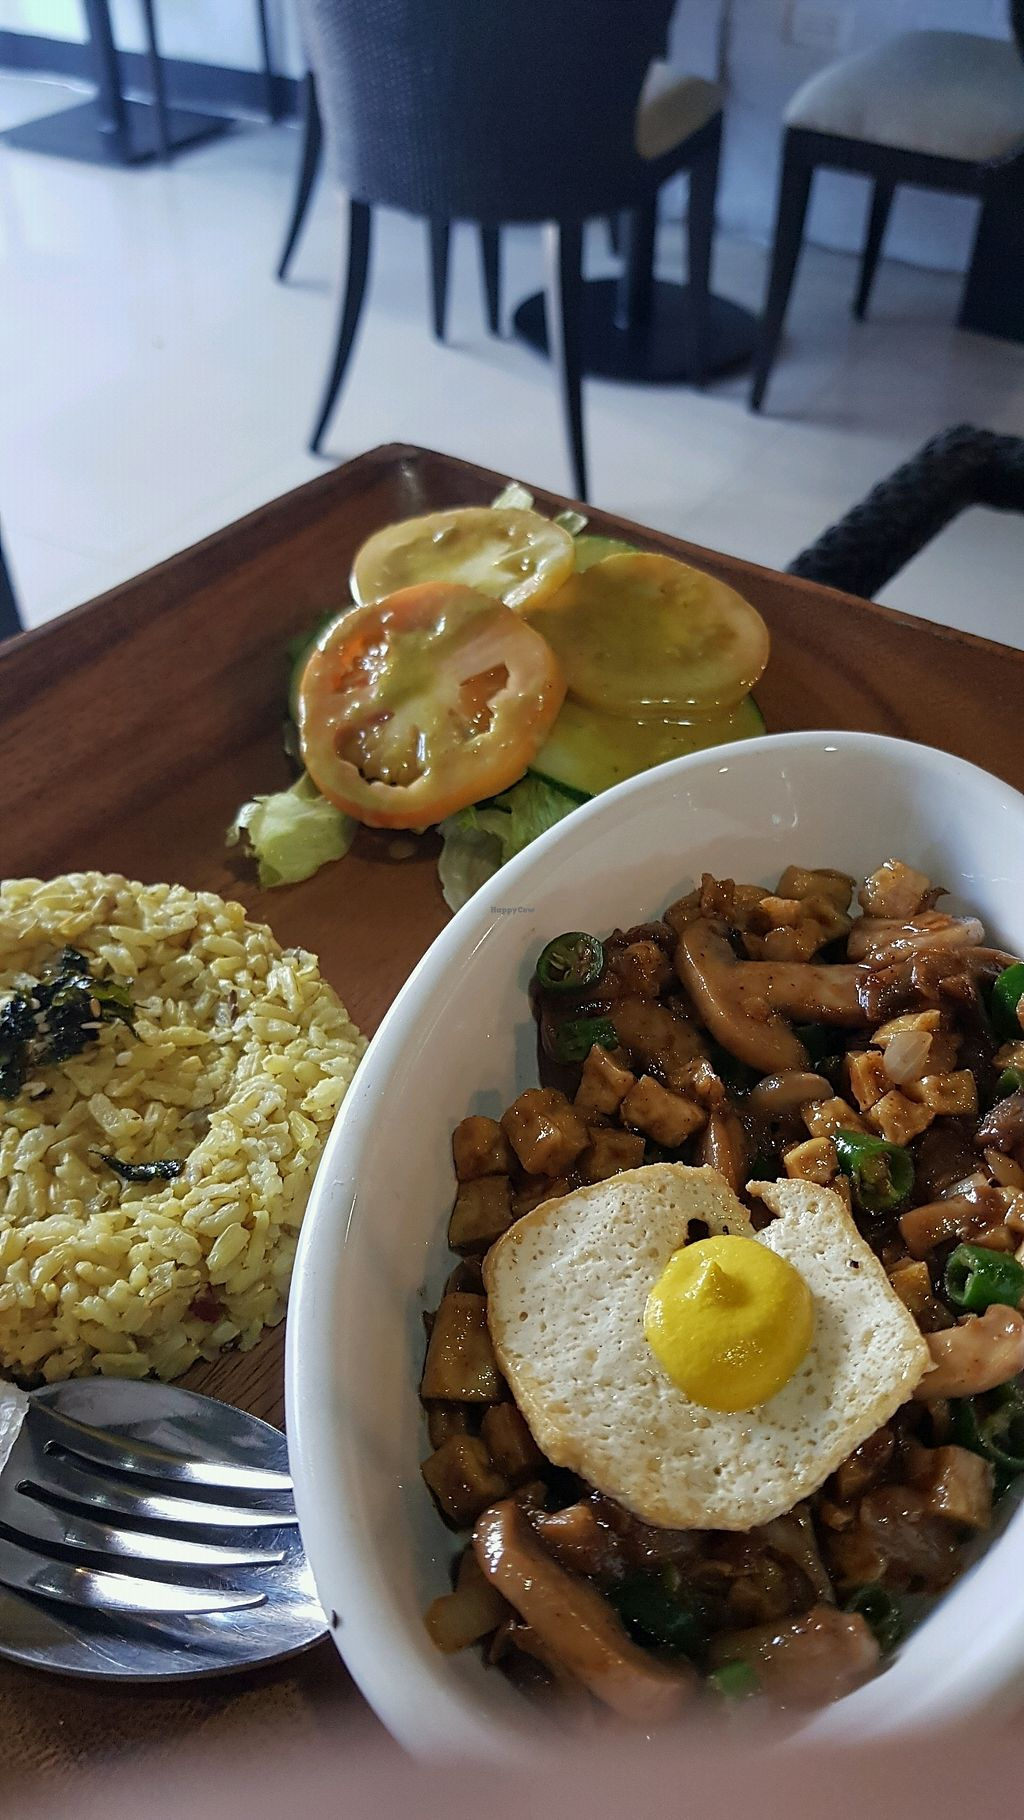 """Photo of Lun-Haw Vegan Cafe  by <a href=""""/members/profile/JezNeri"""">JezNeri</a> <br/>sisig ? <br/> December 4, 2017  - <a href='/contact/abuse/image/86953/332262'>Report</a>"""